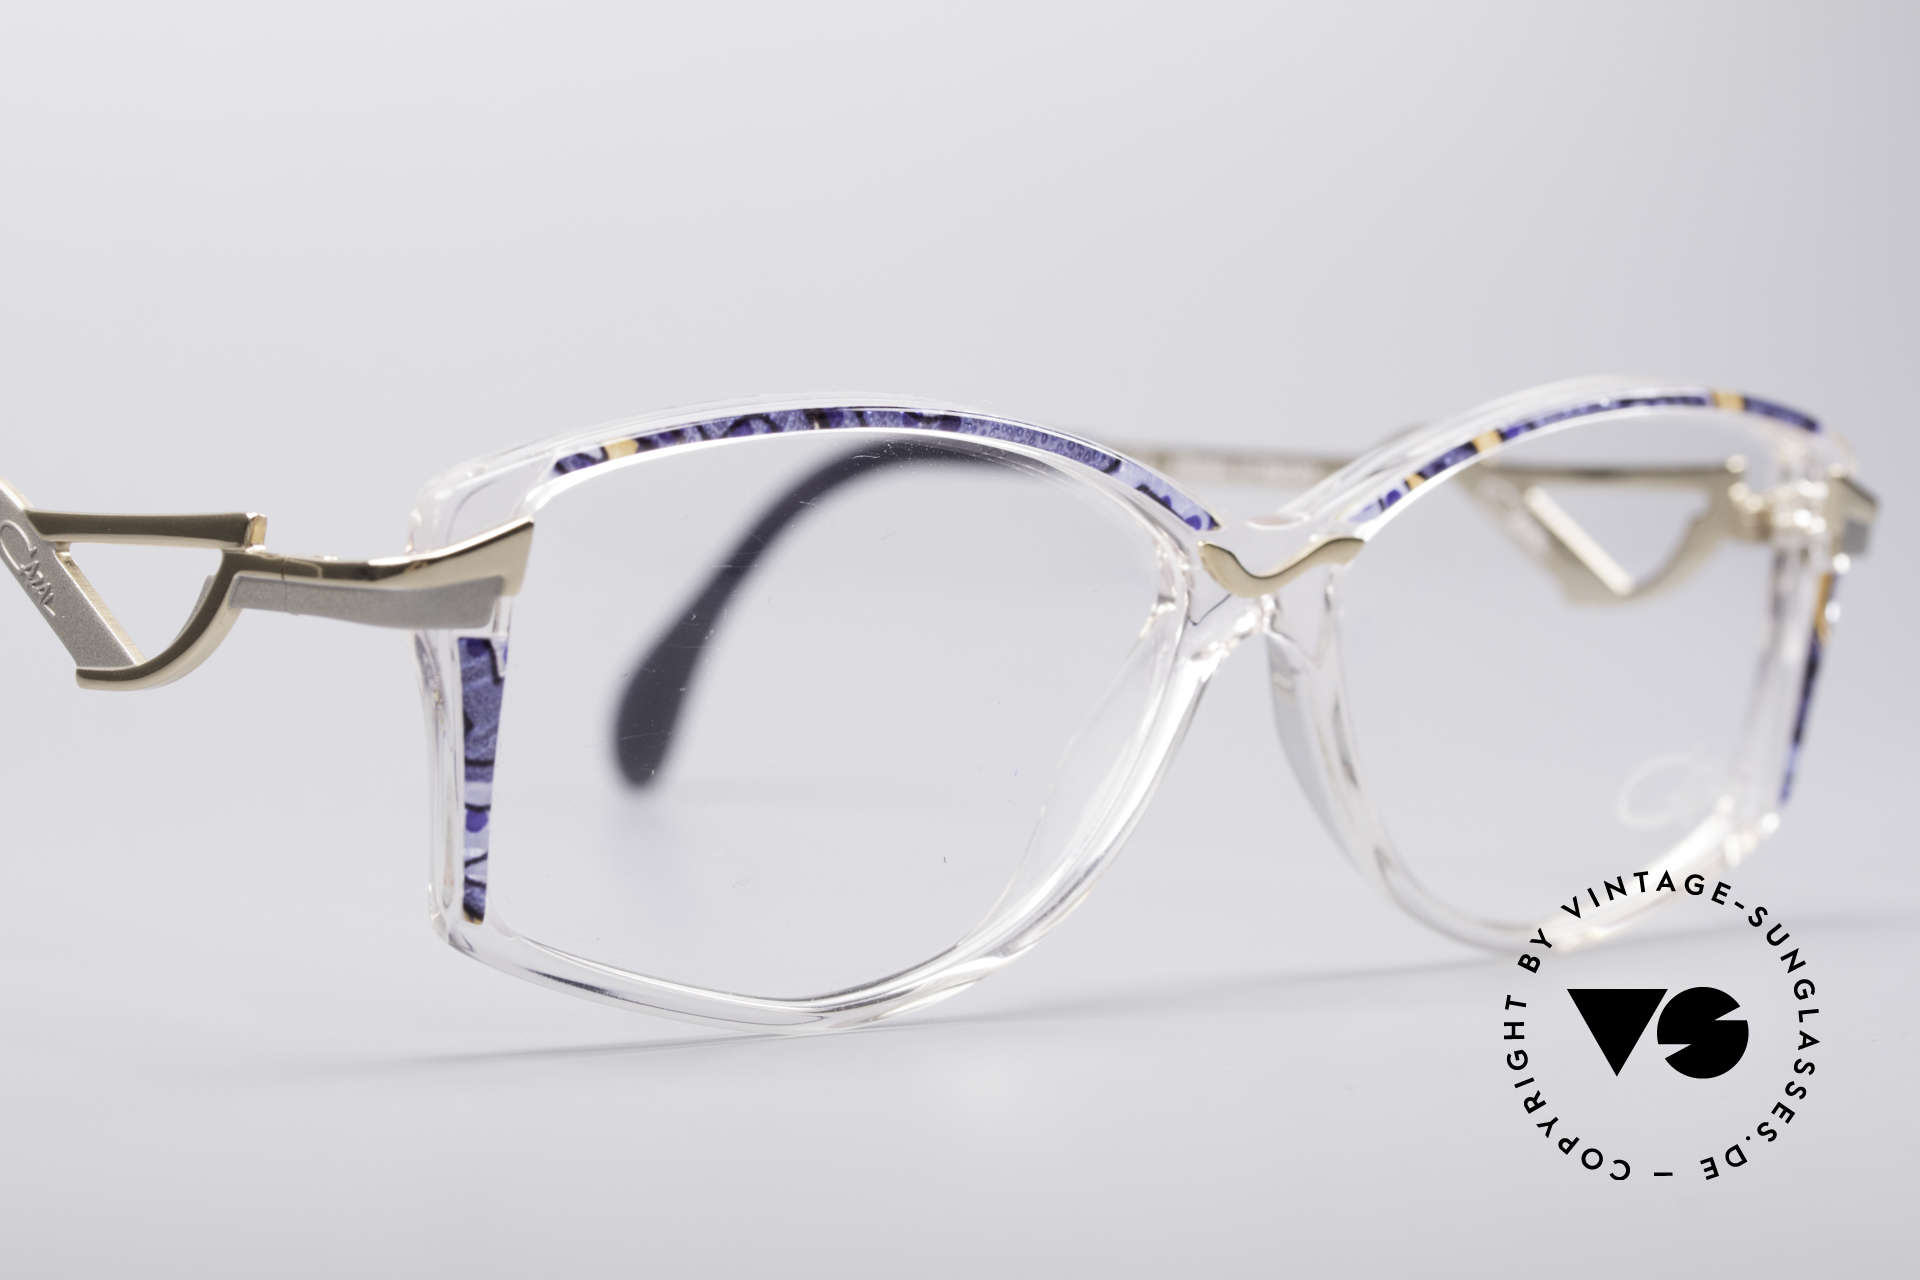 Cazal 369 90's Ladies Designer Glasses, NO RETRO GLASSES, but a fancy old 1990's ORIGINAL!, Made for Women